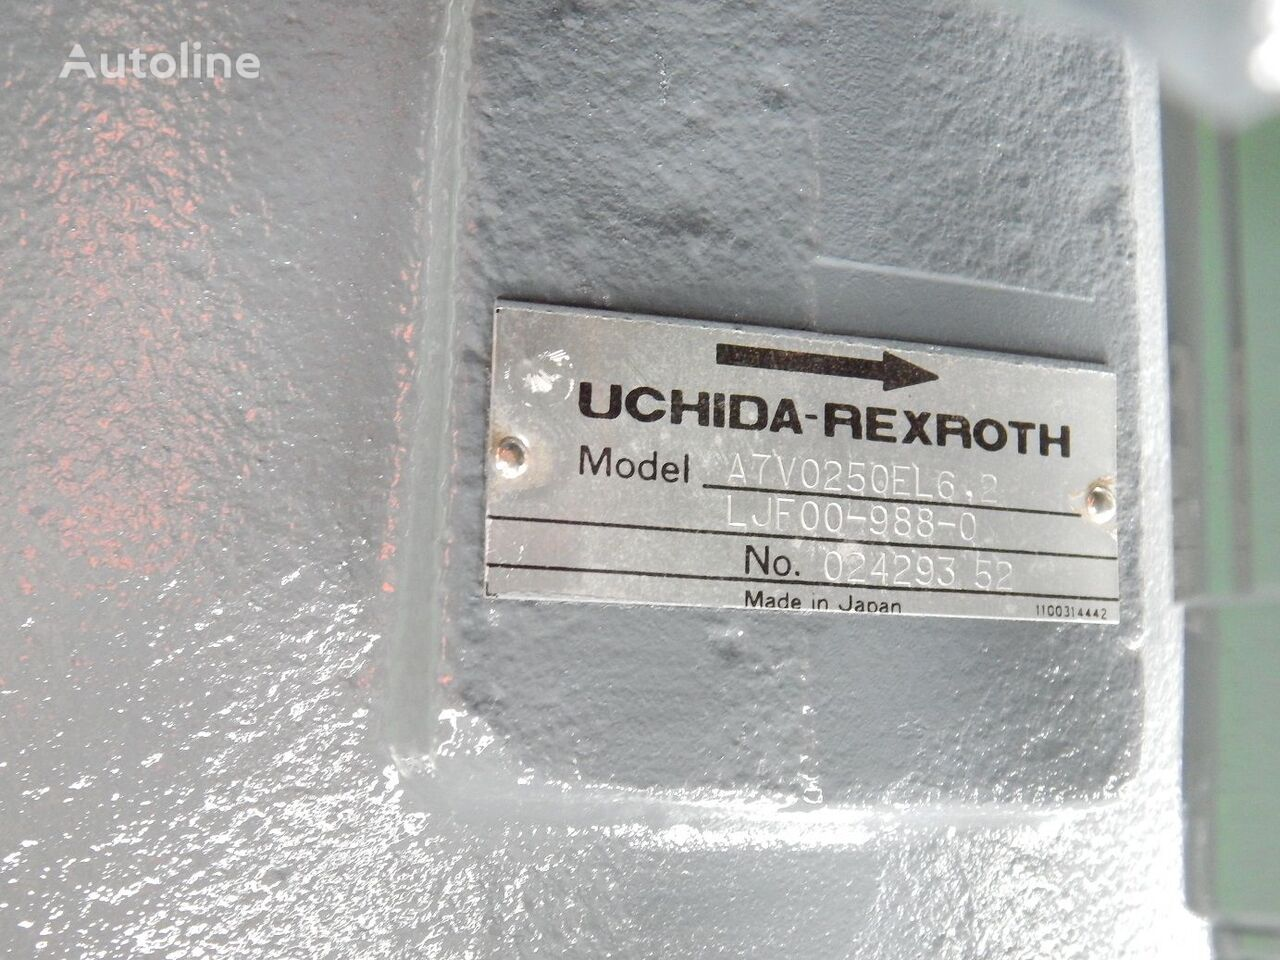 FIAT-HITACHI UCHIDA REXROTH A7V0250EL6. 2 UCHIDA REXROTH hydraulic pump for FIAT-HITACHI EX455 excavator